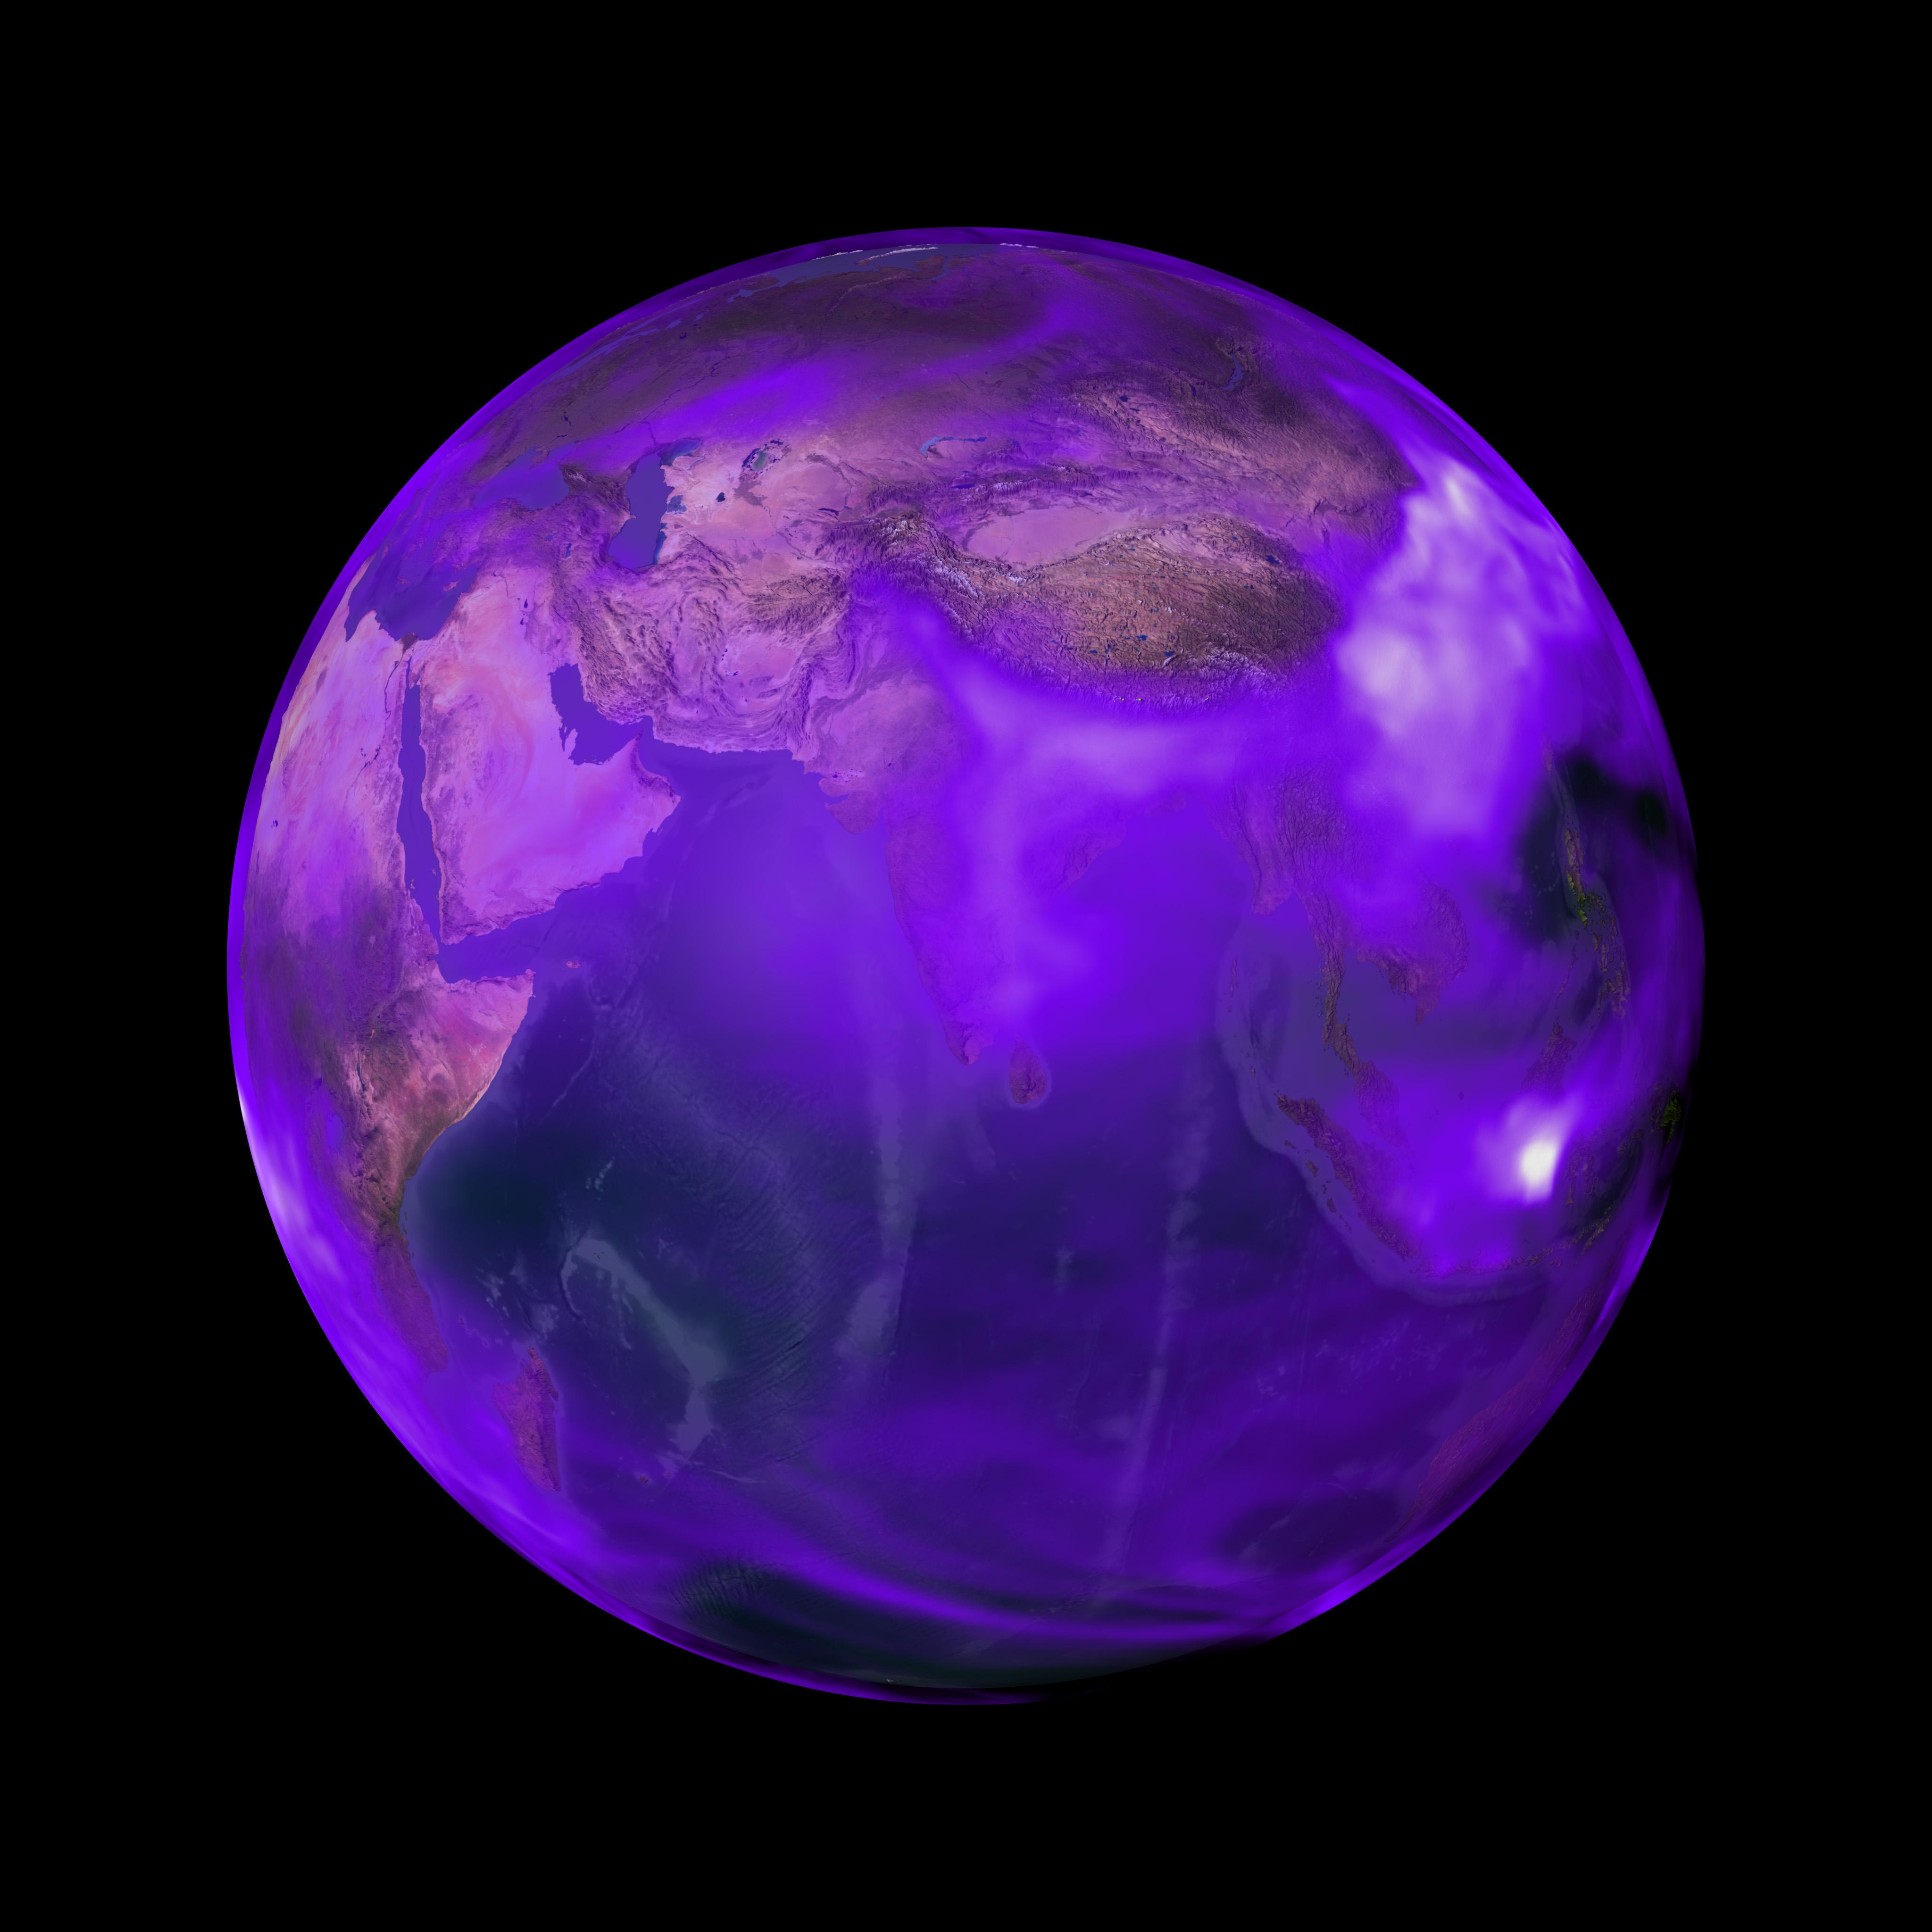 nasa planet pictures of black - photo #31